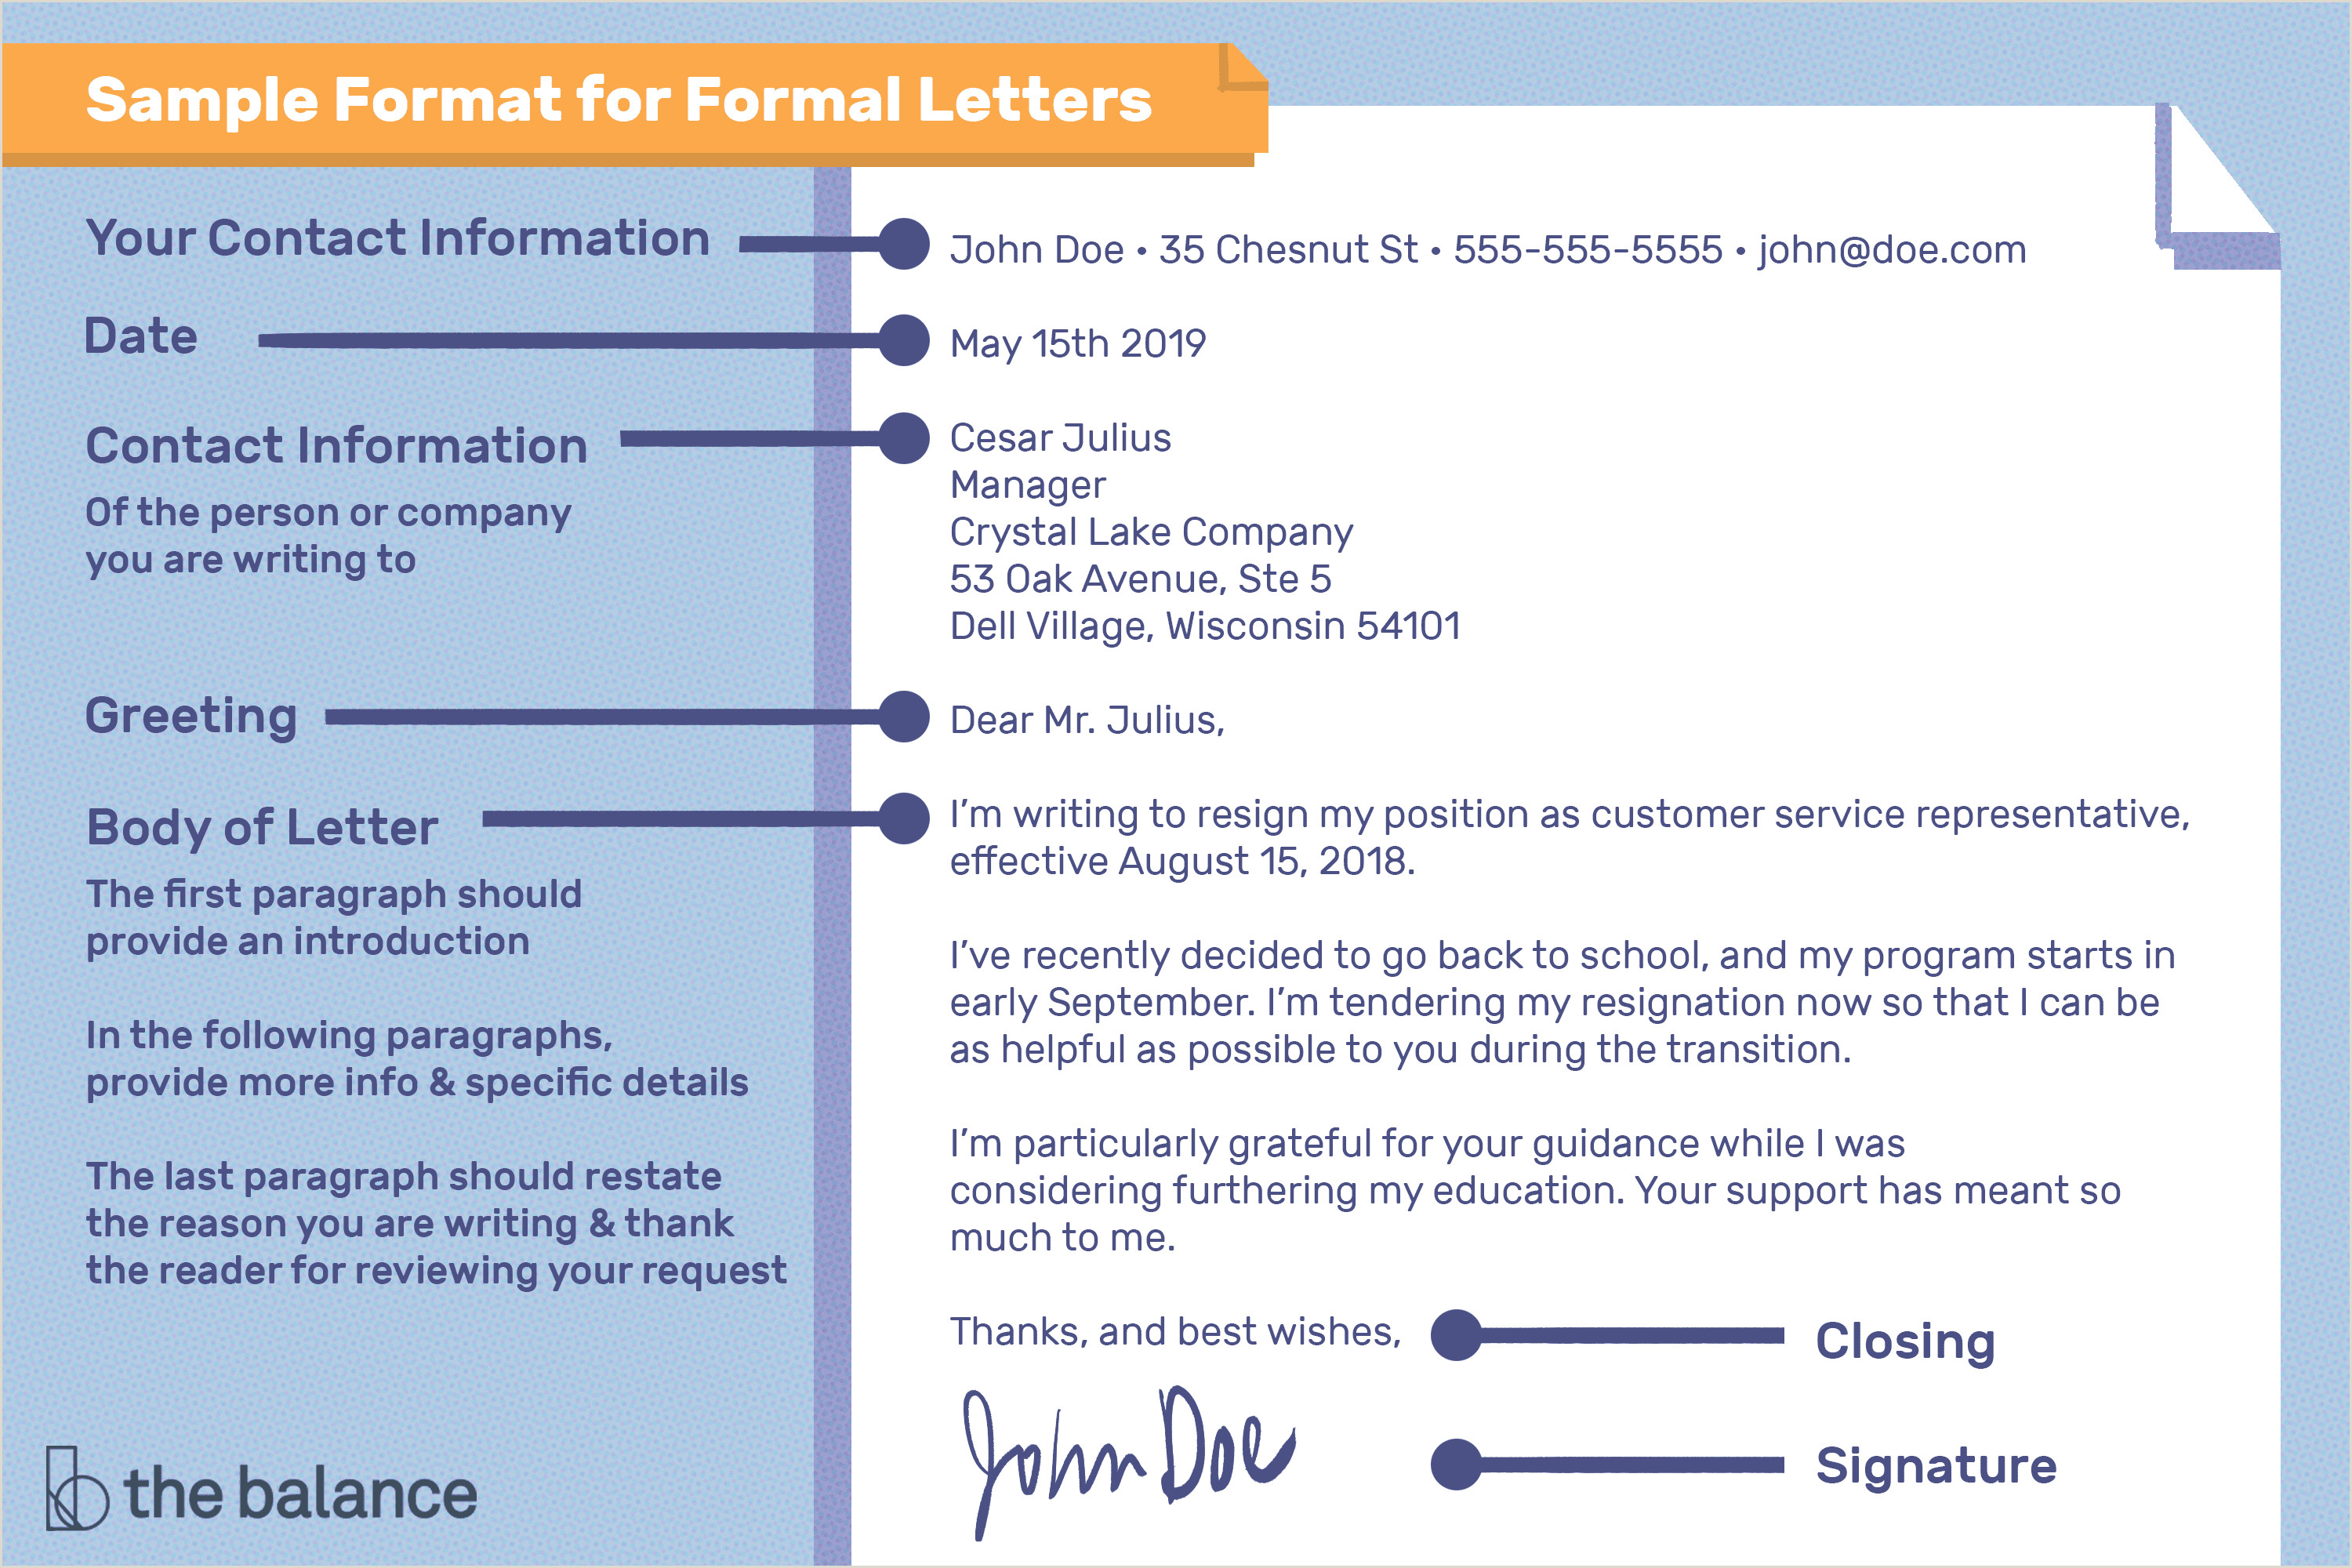 Sample Format for Writing a Letter